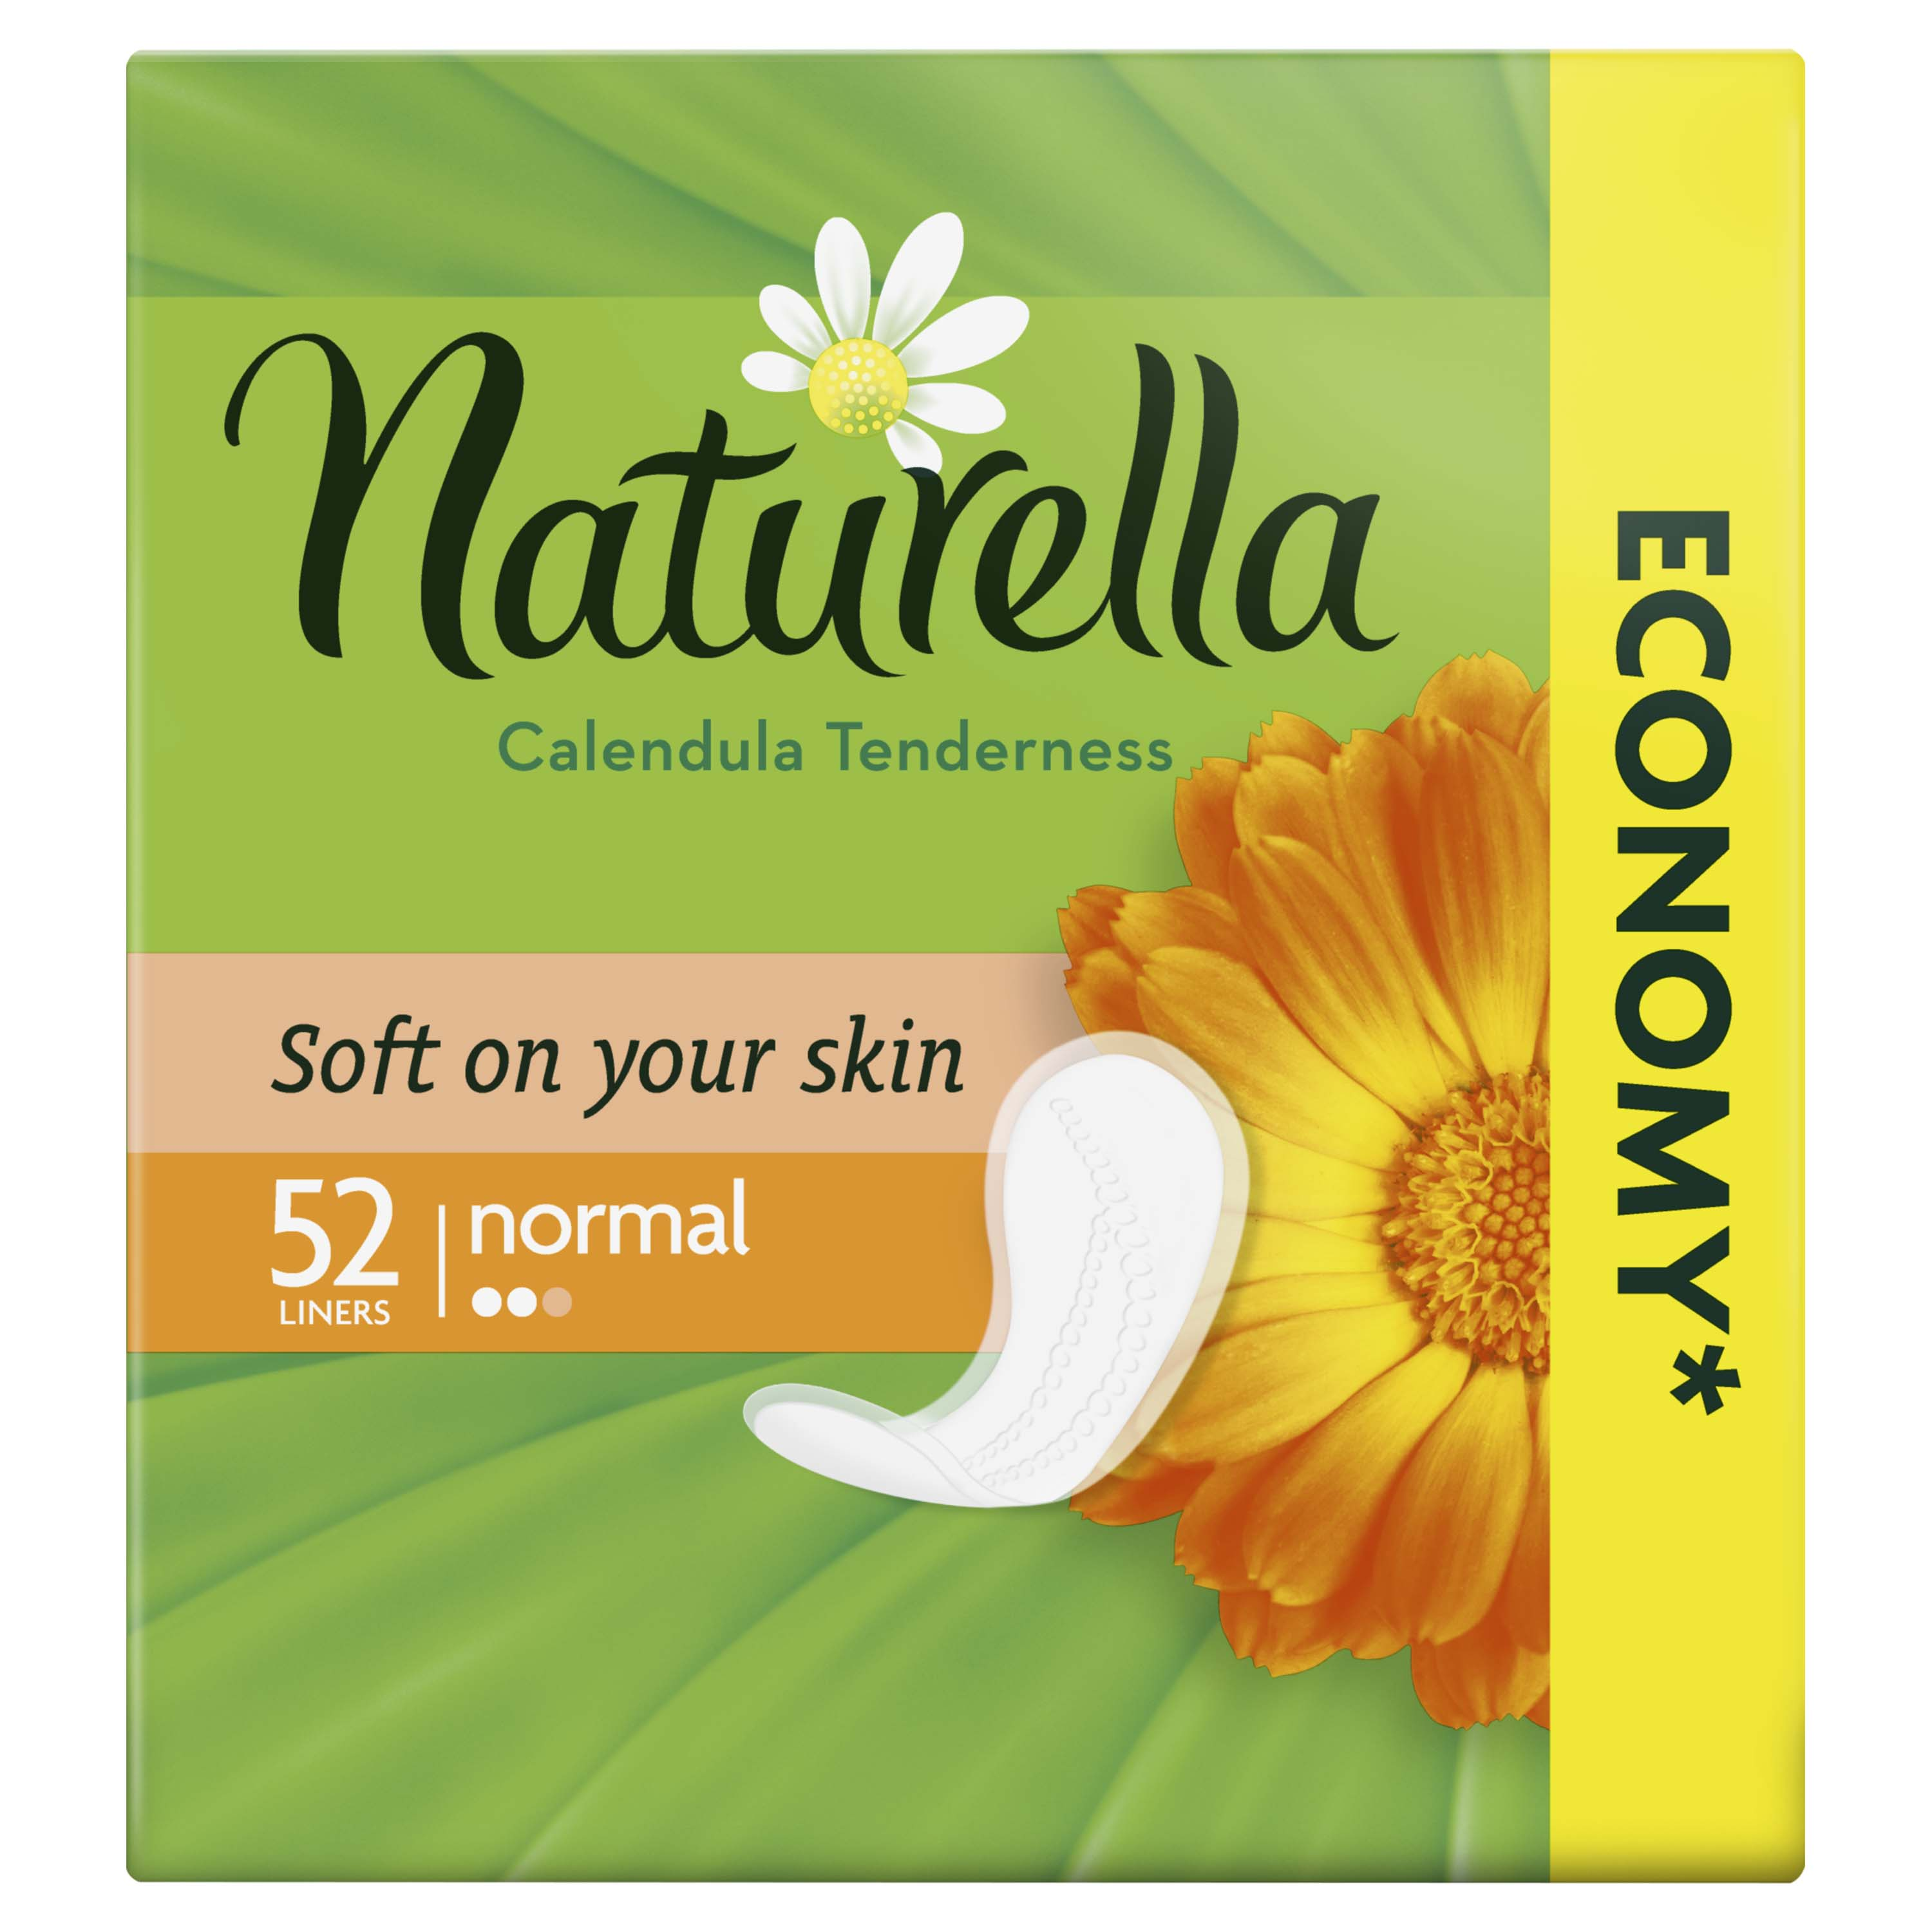 NATURELLA Calendula Tenderness Normal 60ks – intimky